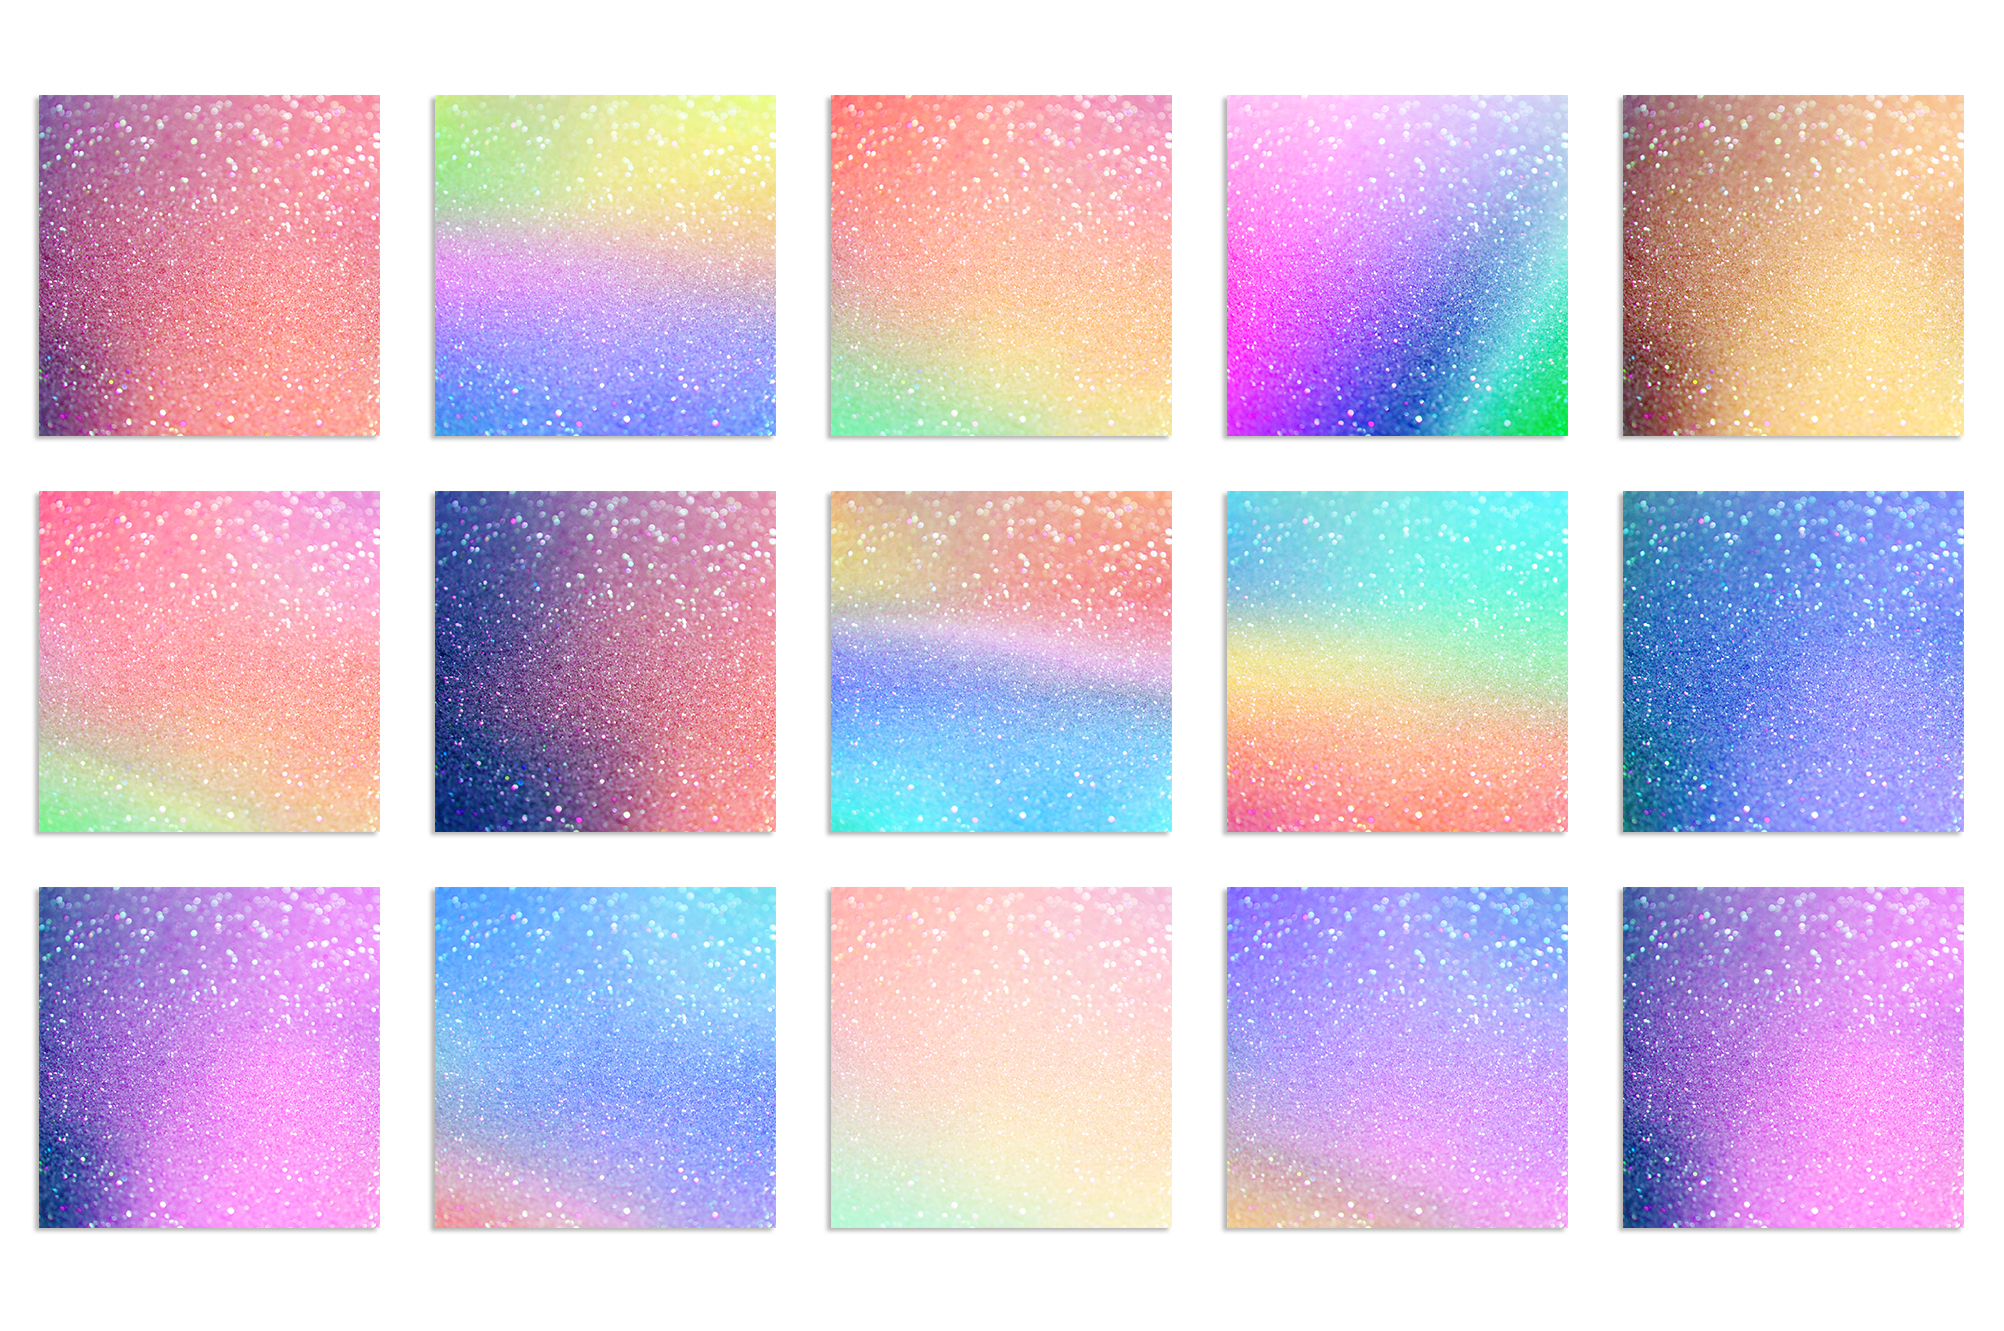 Iridescent 95 Glitter Textures Holographic Backgrounds example image 8